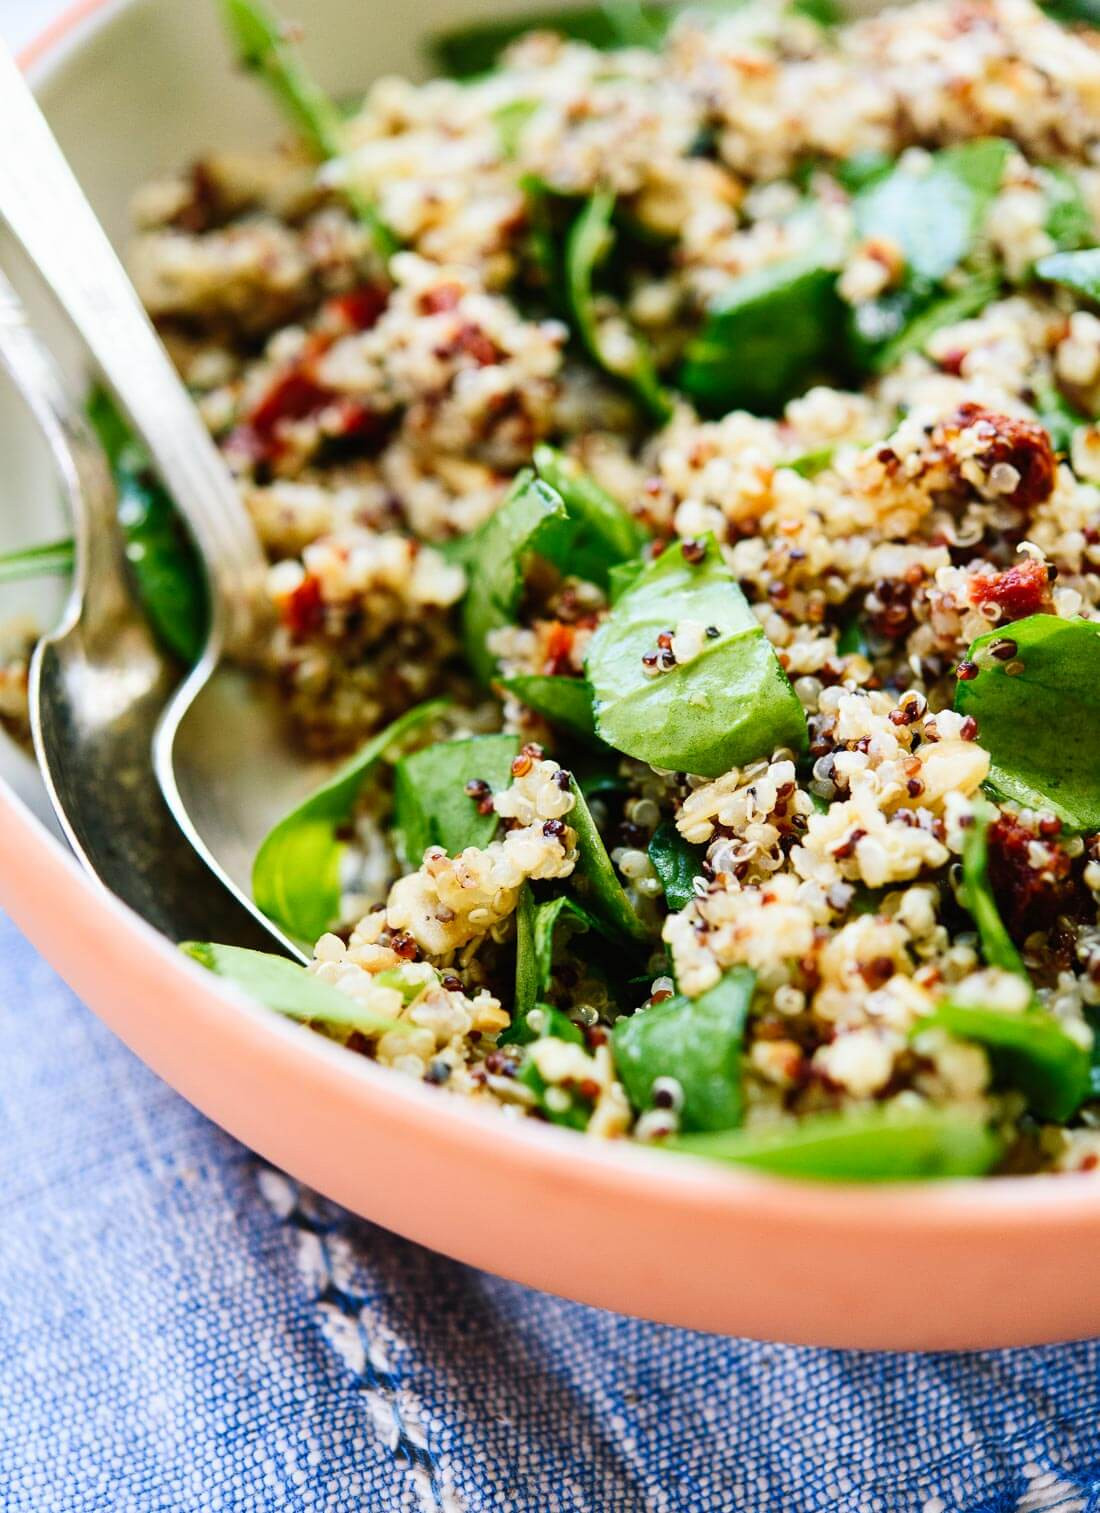 Quinoa Spinach Salad  Sun Dried Tomato Spinach and Quinoa Salad Cookie and Kate